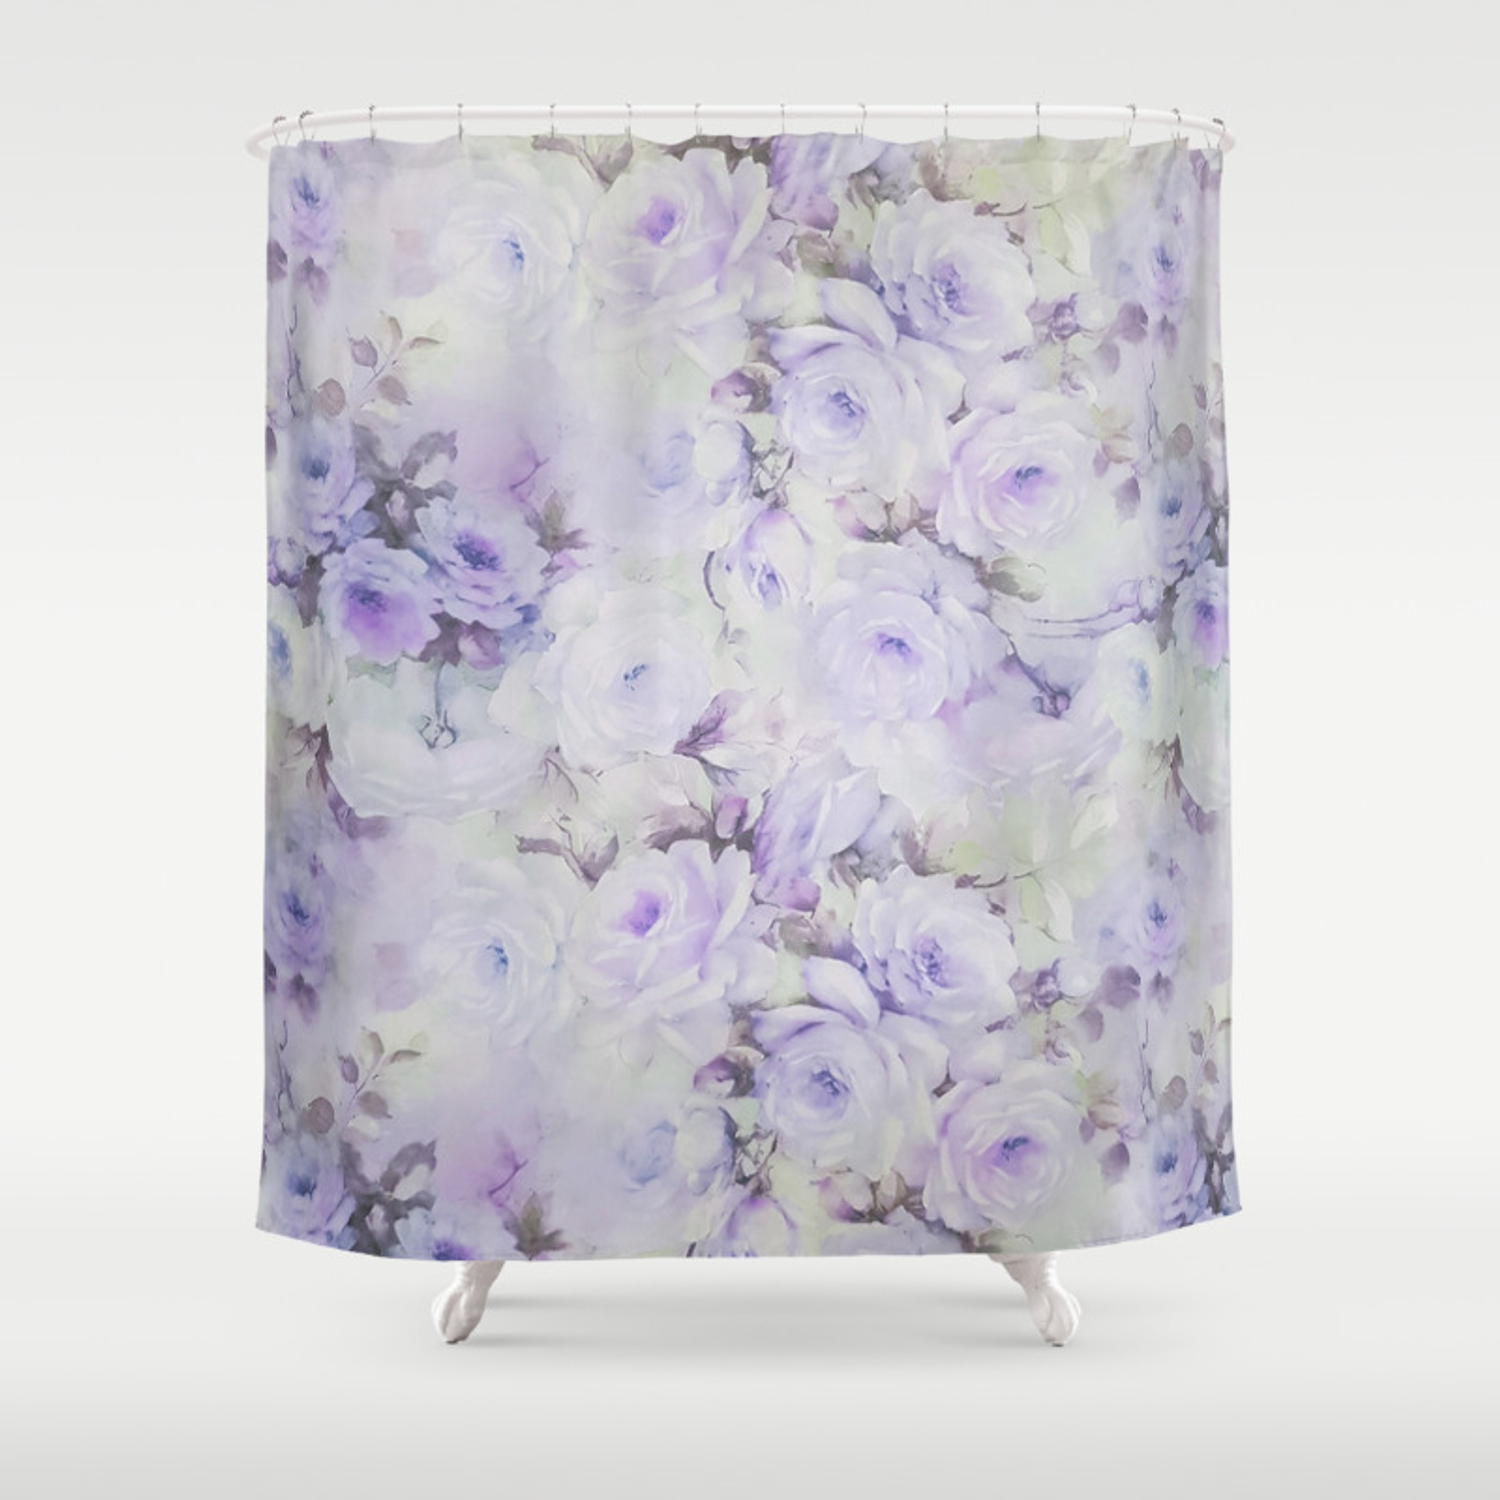 Vintage Lavender Gray Botanical Roses Floral Shower Curtain By Pink Water Society6